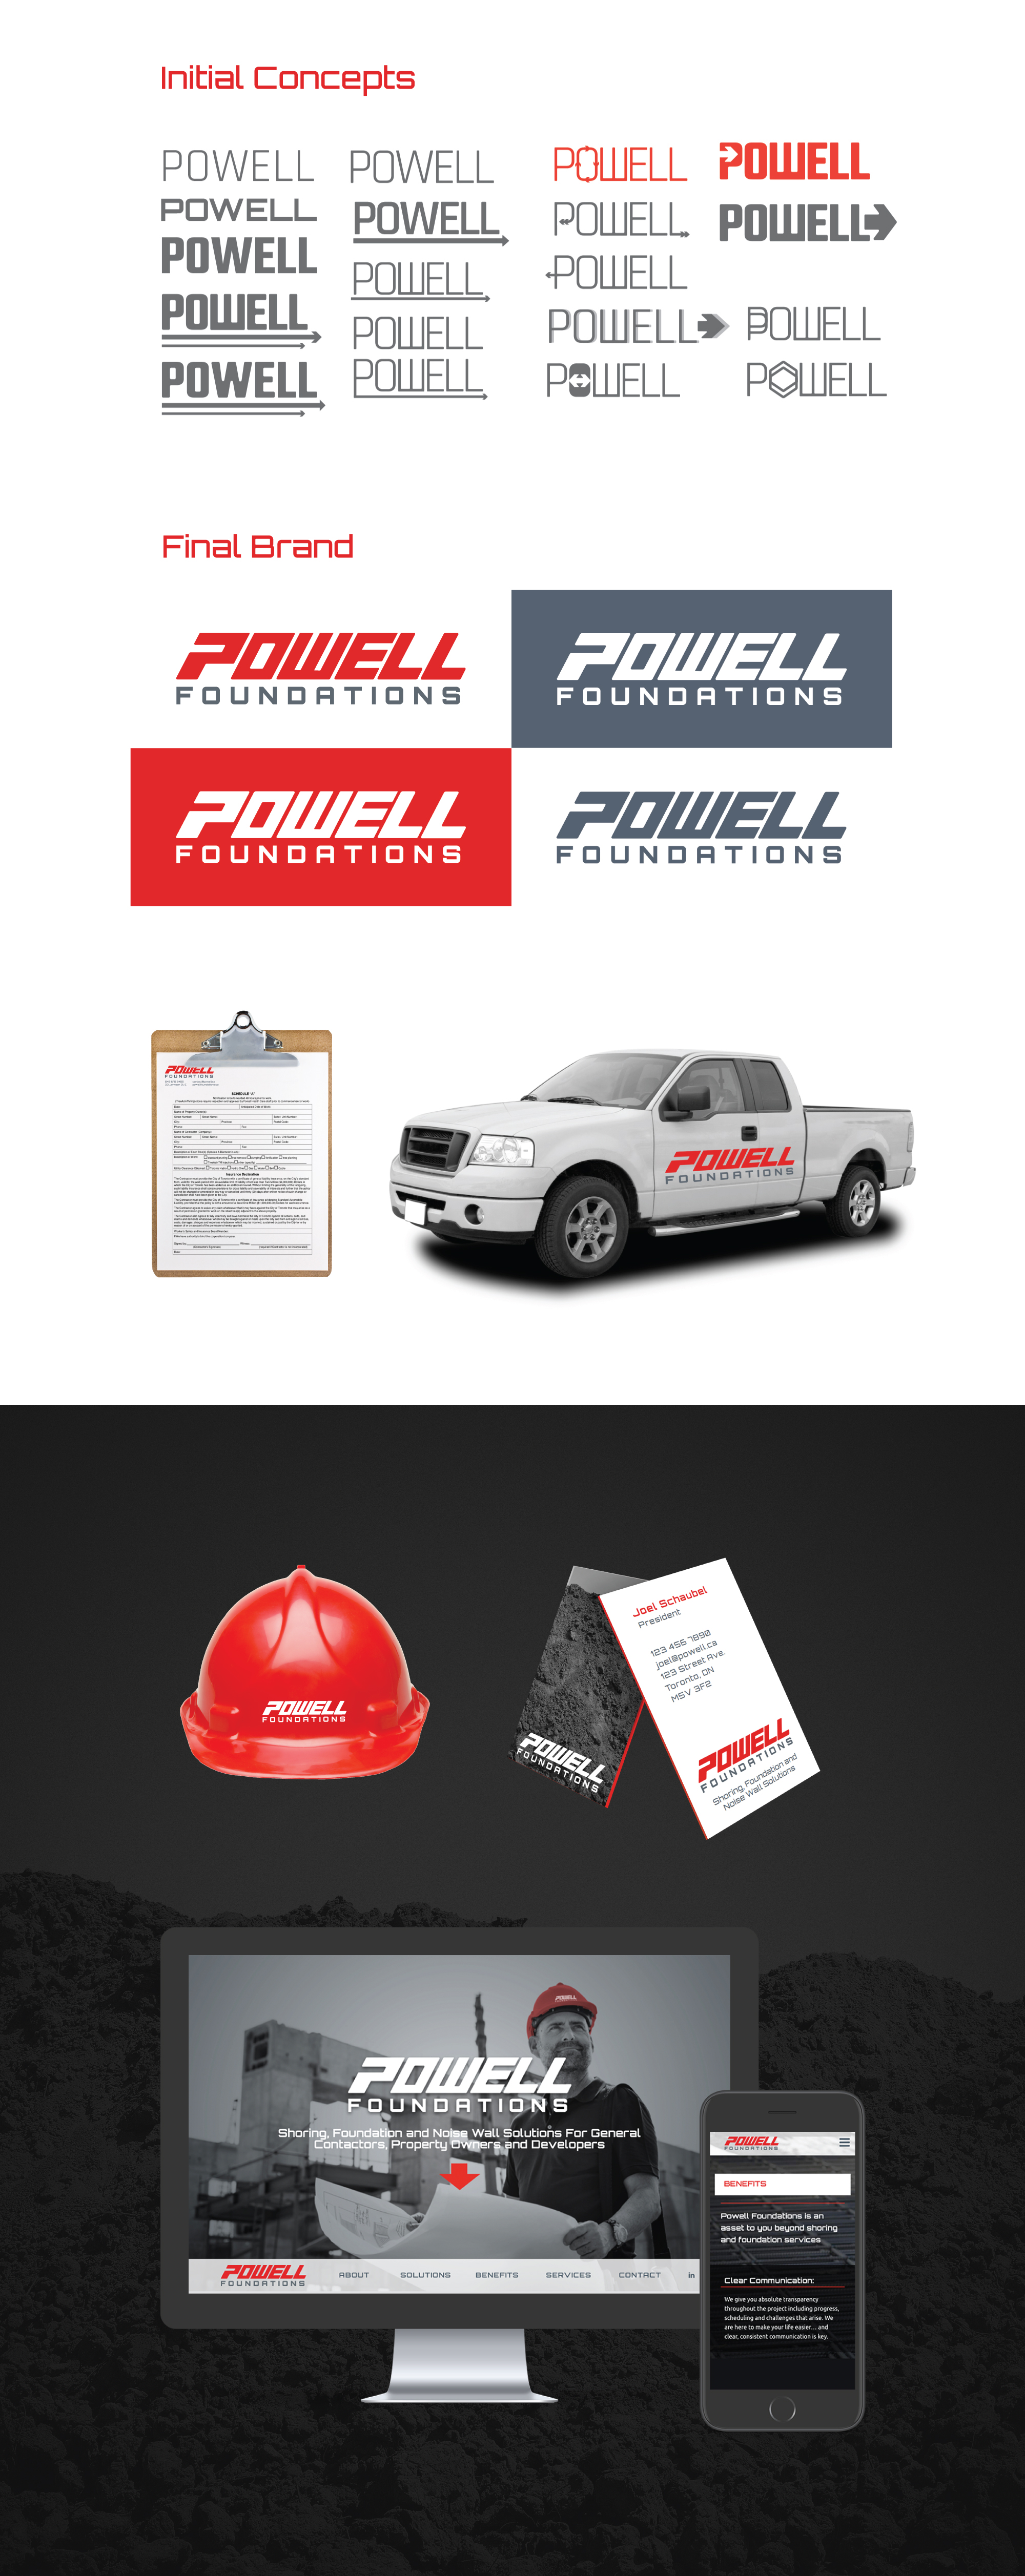 Powell Foundations Branding and Website Design